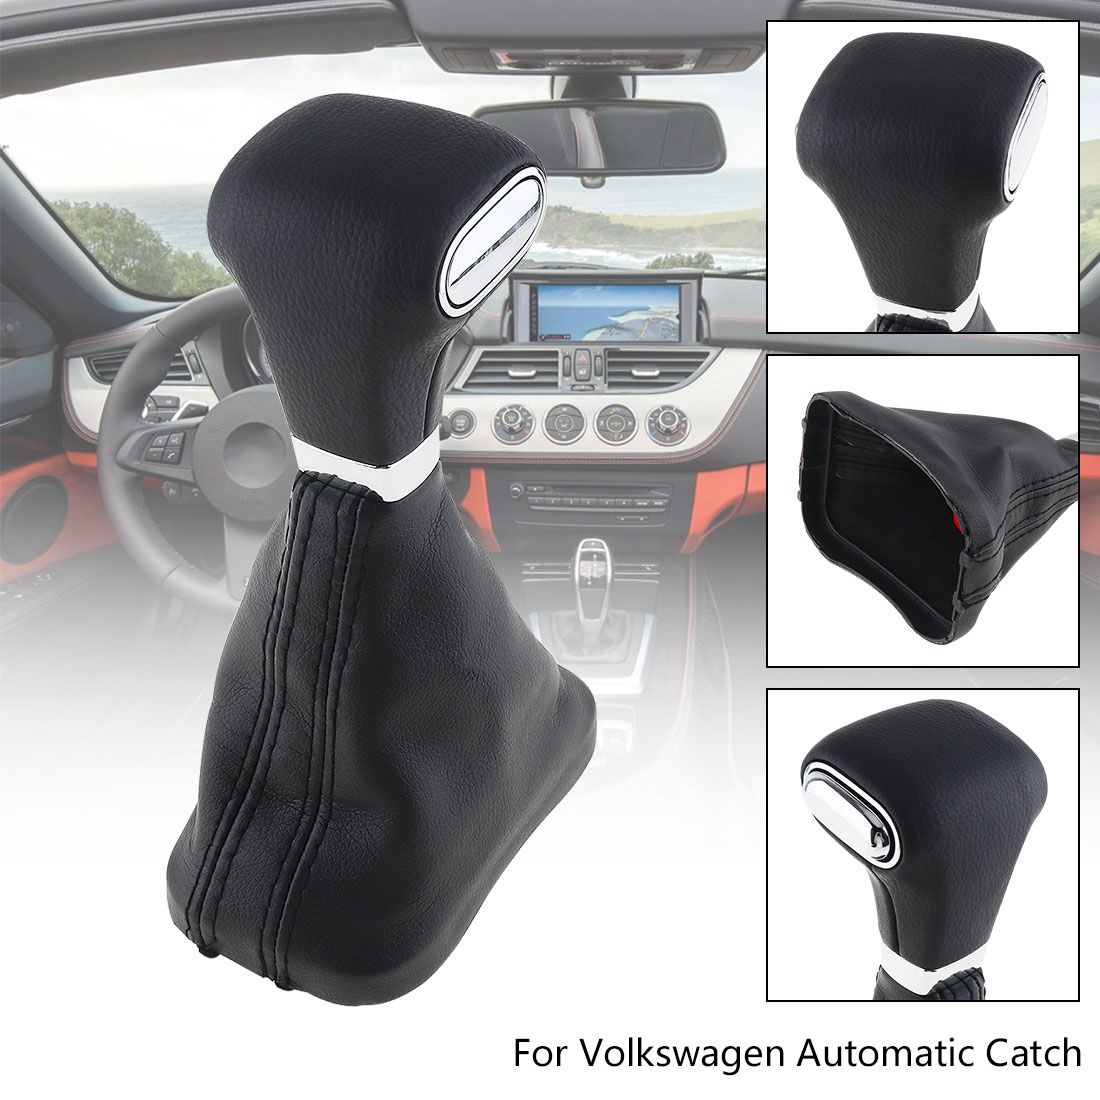 Details about Automatic Car Gear Shift Knob with Dust cover For VW  Volkswagen Golf Bora Tiguan